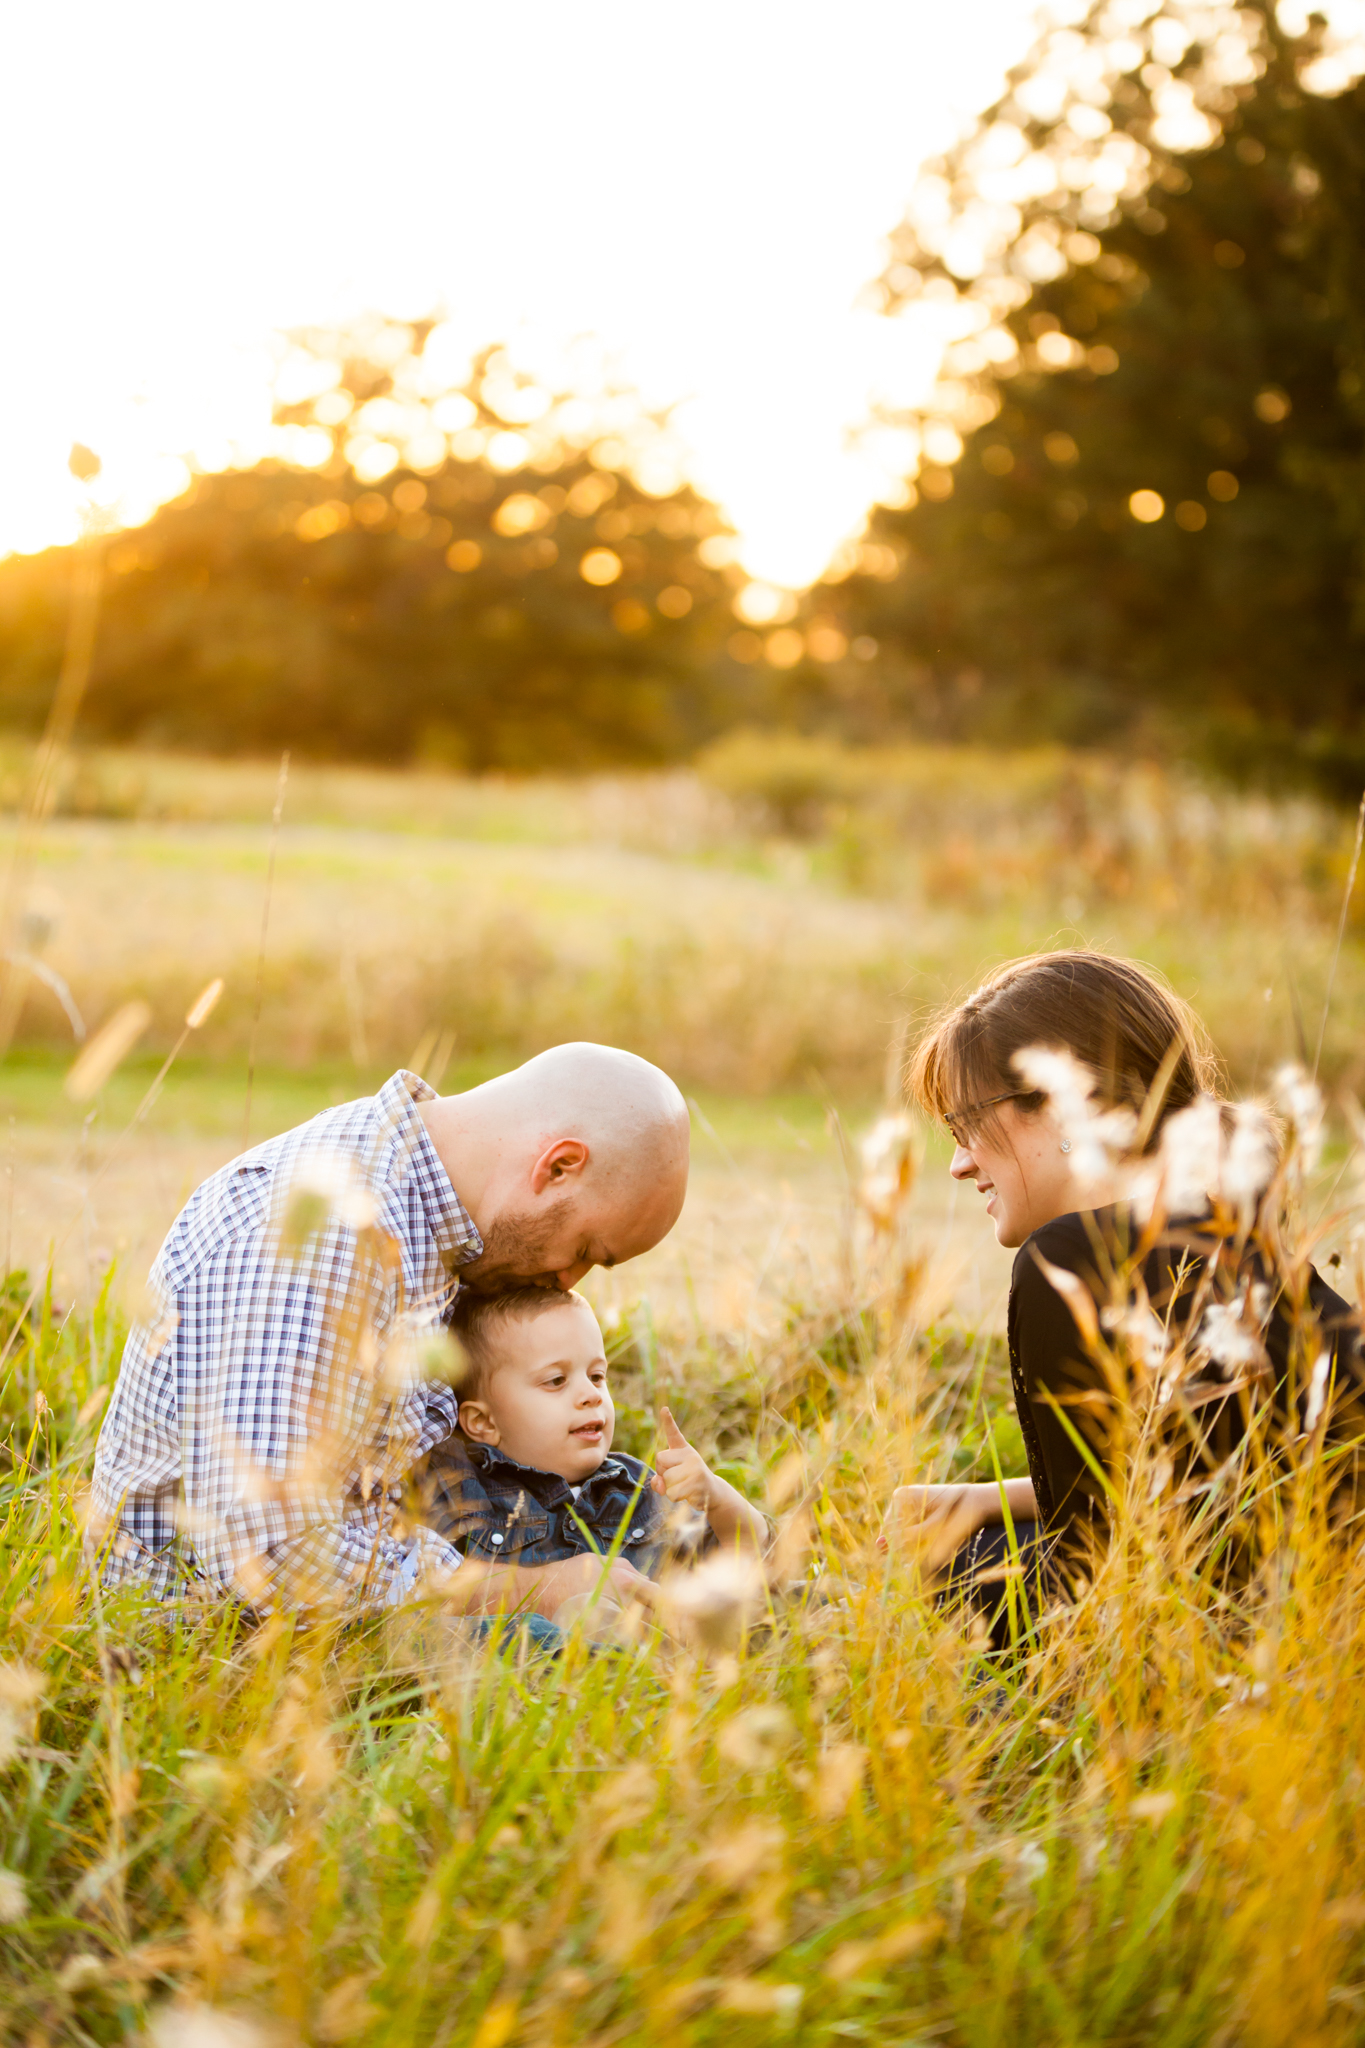 Chicago-family-photography-9.jpg